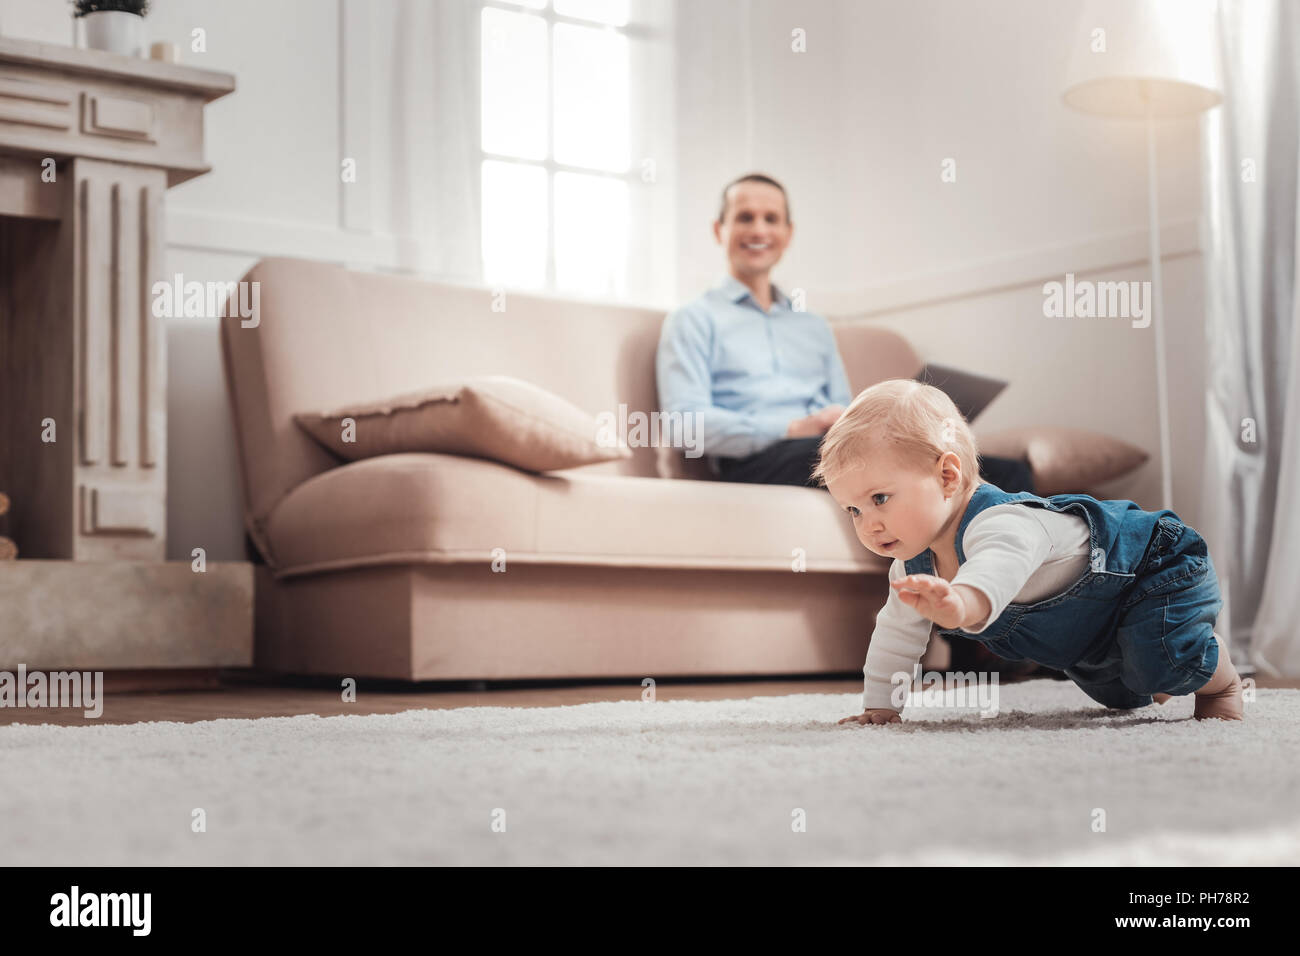 Cute positive child crawling - Stock Image